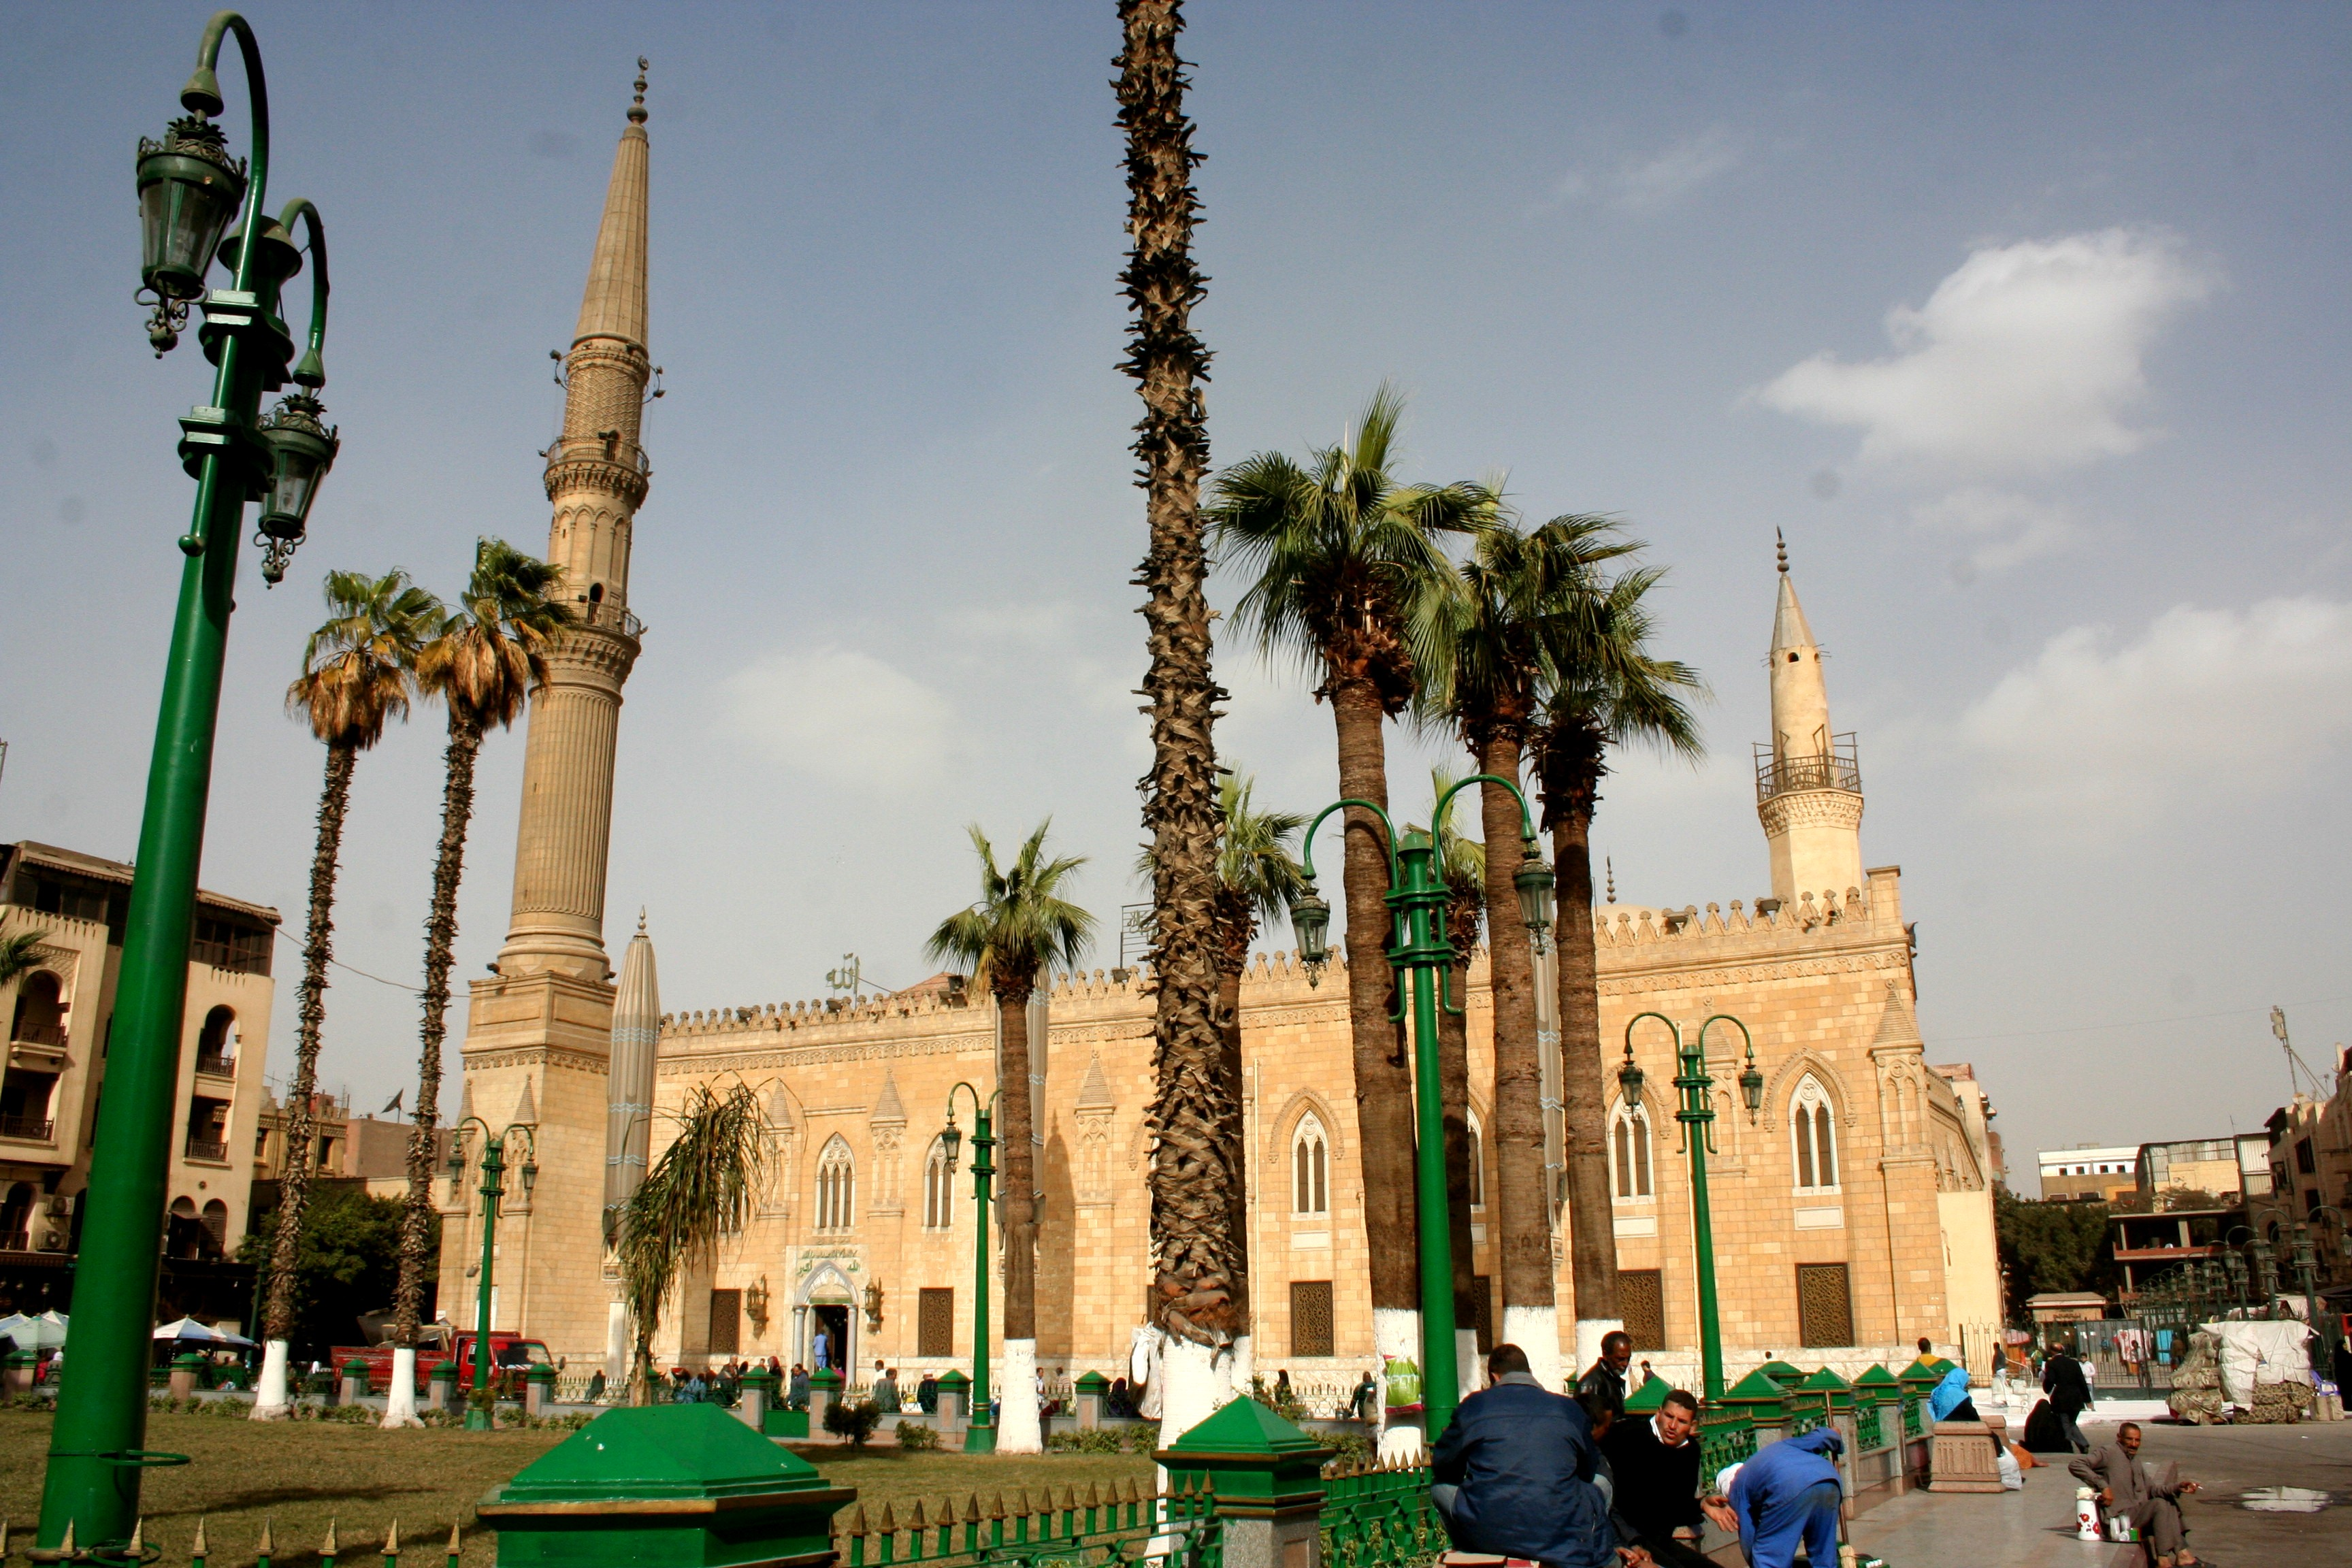 Al-Hussein Mosque in Cairo